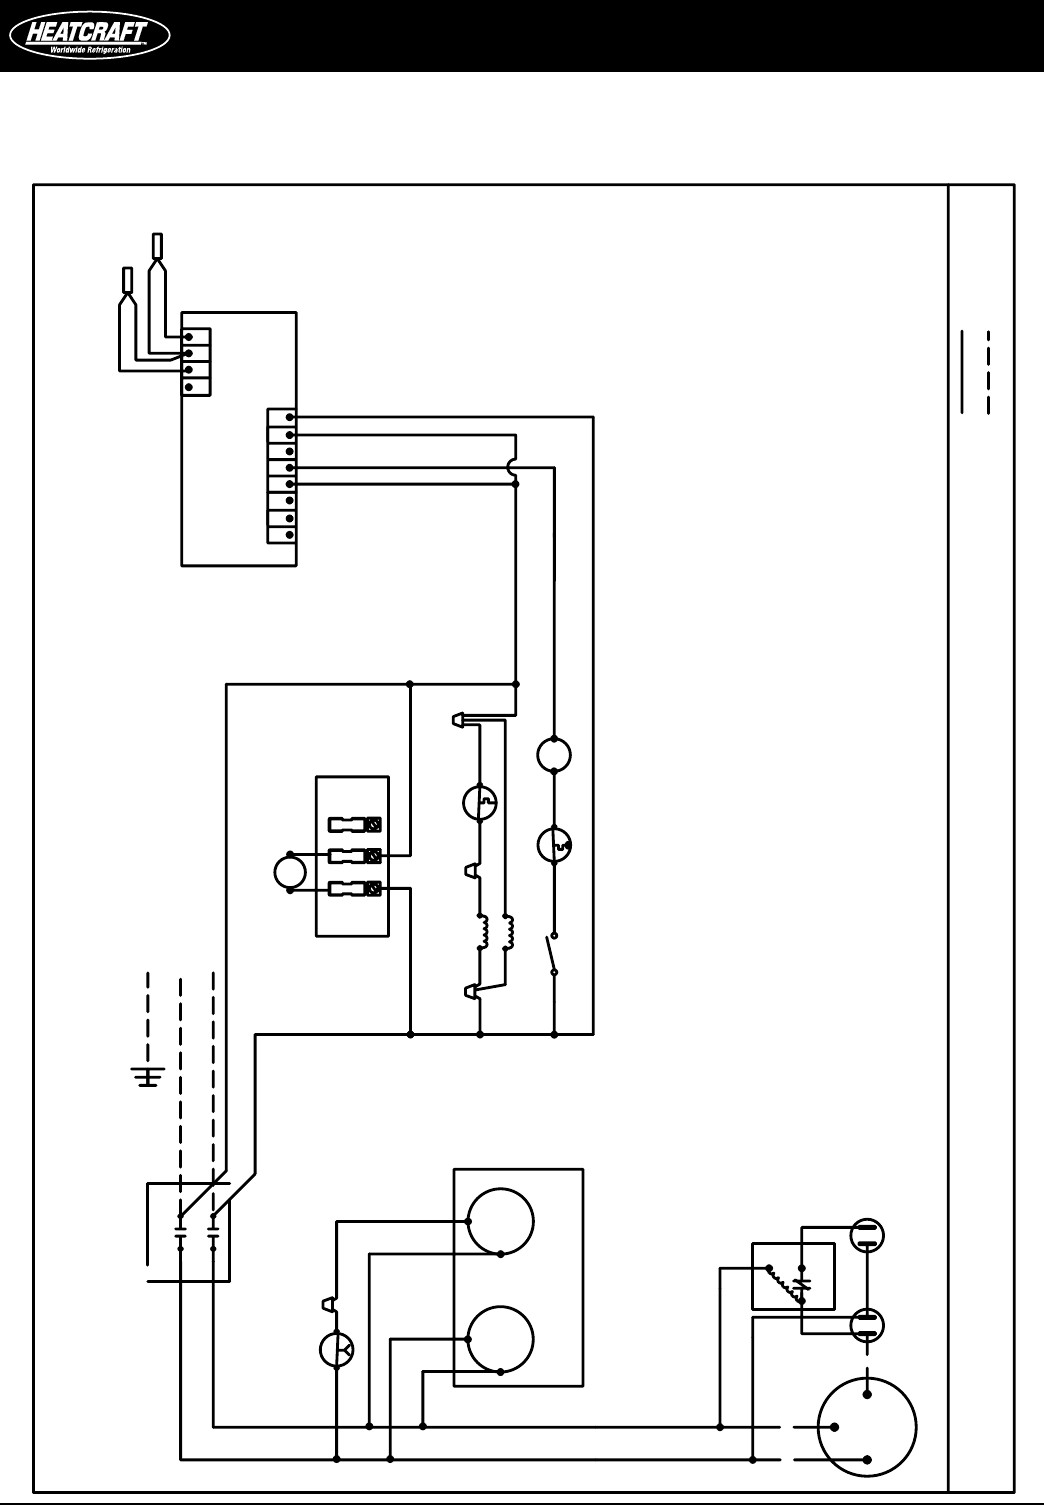 How Does Heatcraft Wiring Diagram